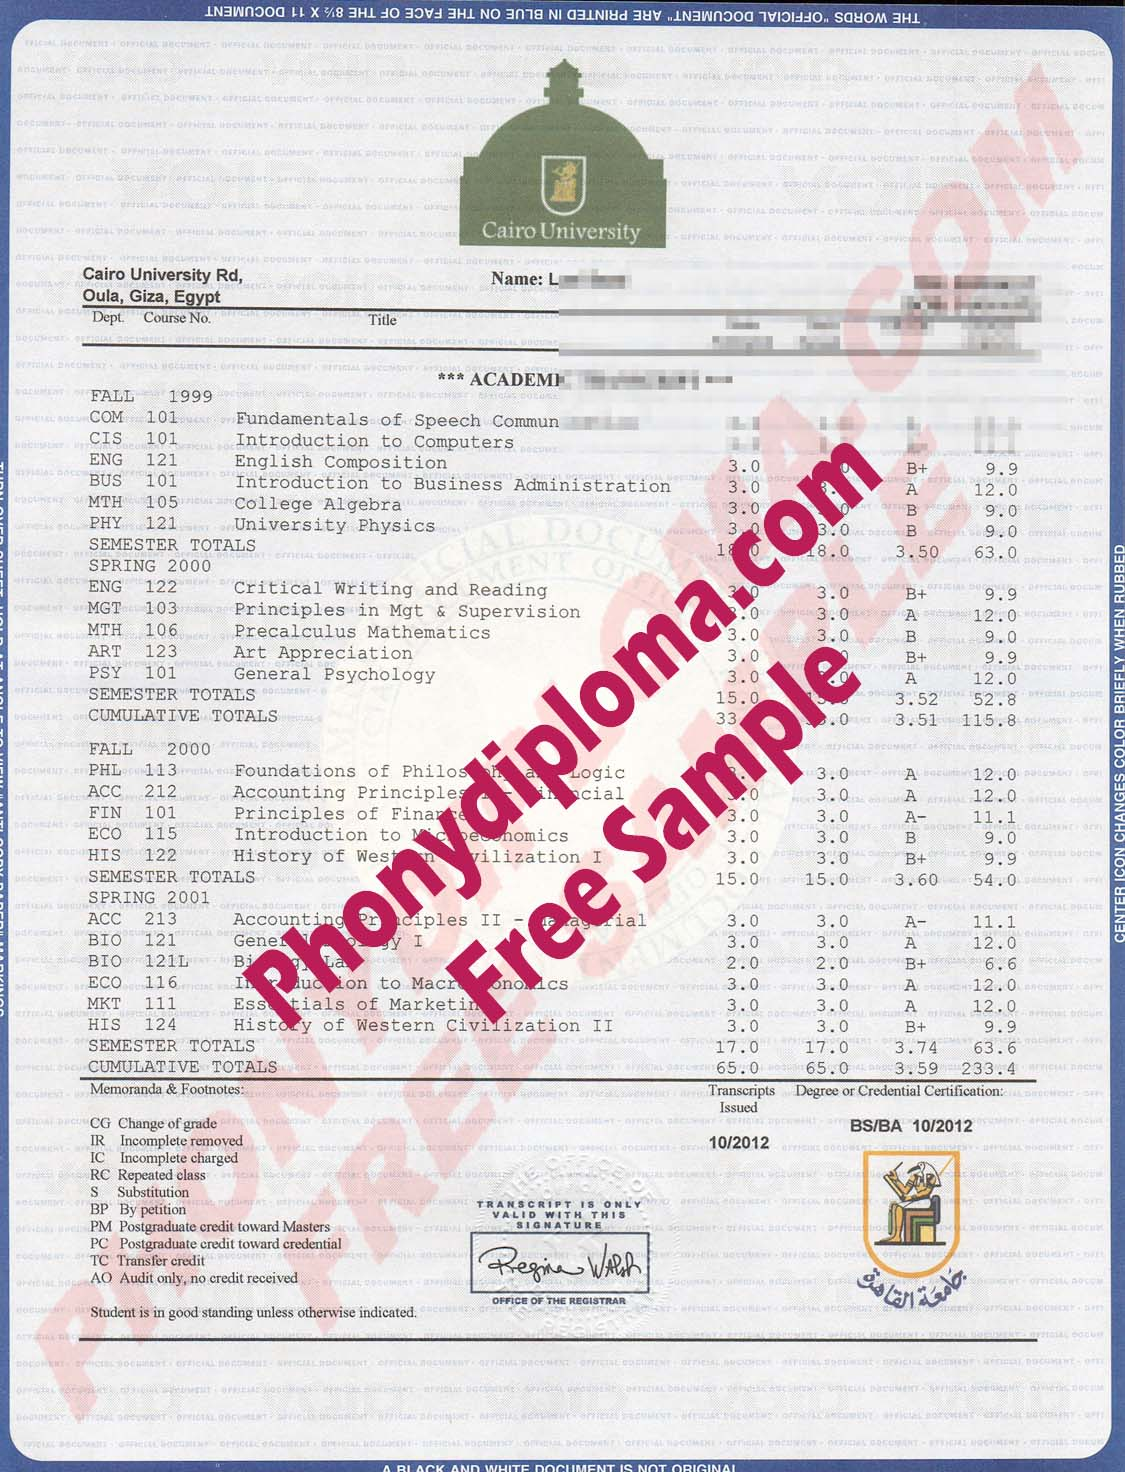 Cairo University House Design Transcript Free Sample From Phonydiploma